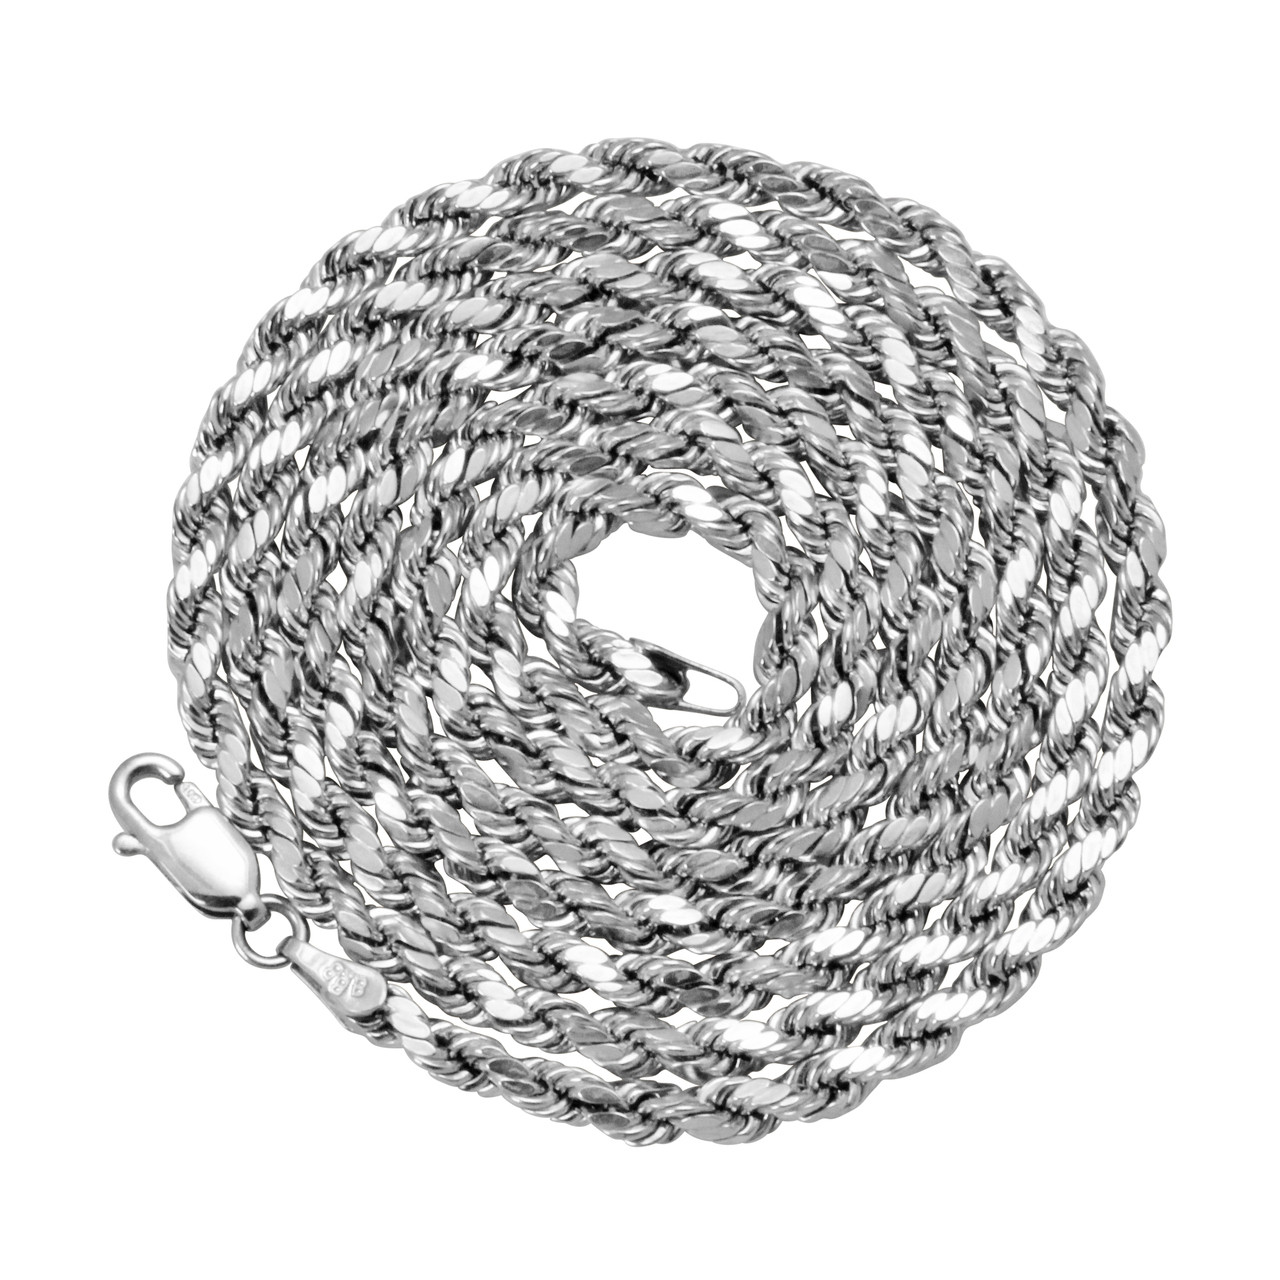 0ee43945b06cb 10k White Gold 3mm Hollow Rope Chain 26in